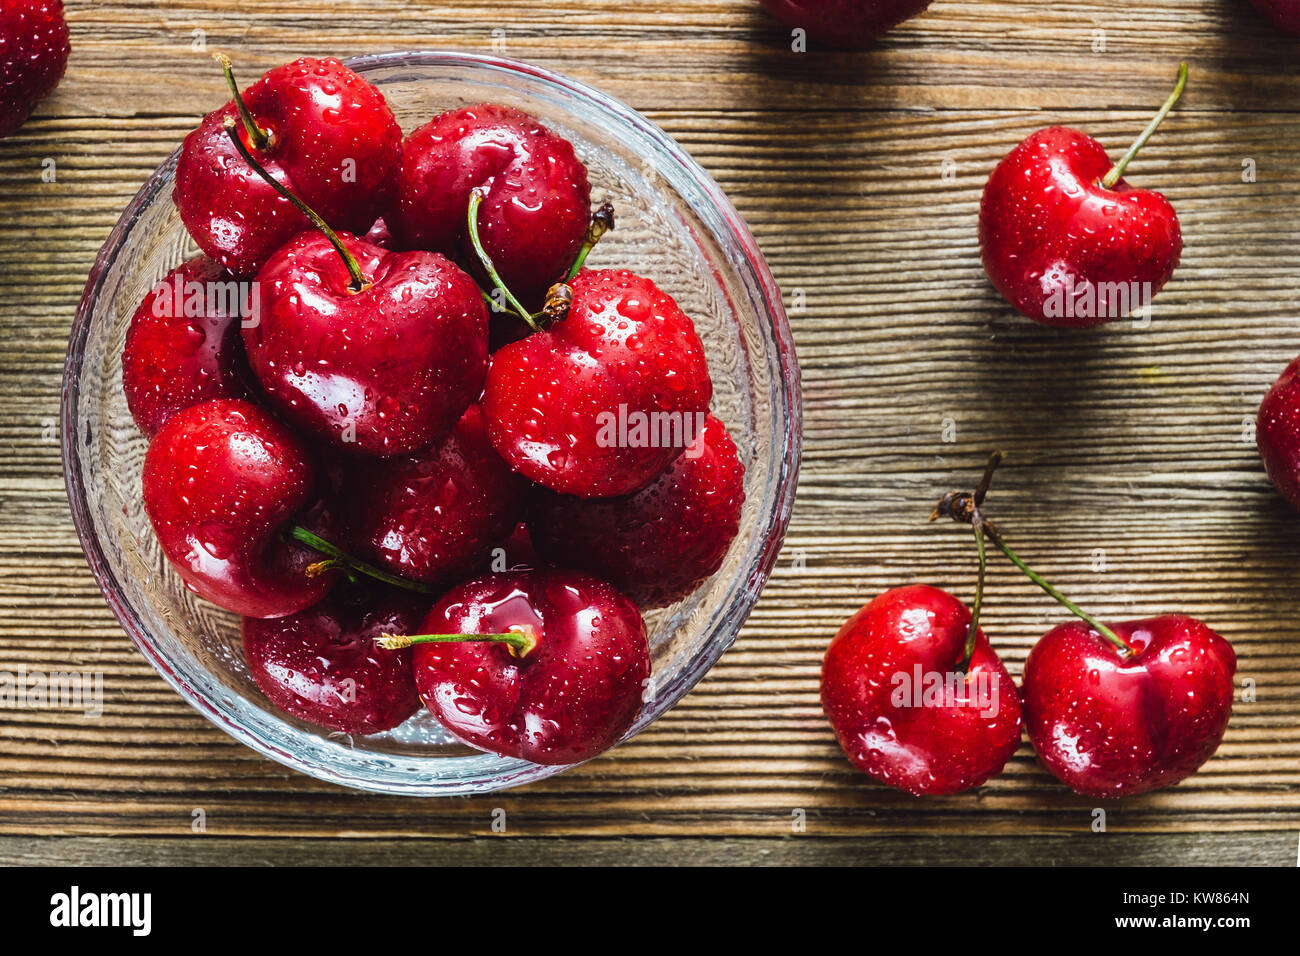 Freshly Washed Cherries in Glass Bowl on Cedar Table - Stock Image